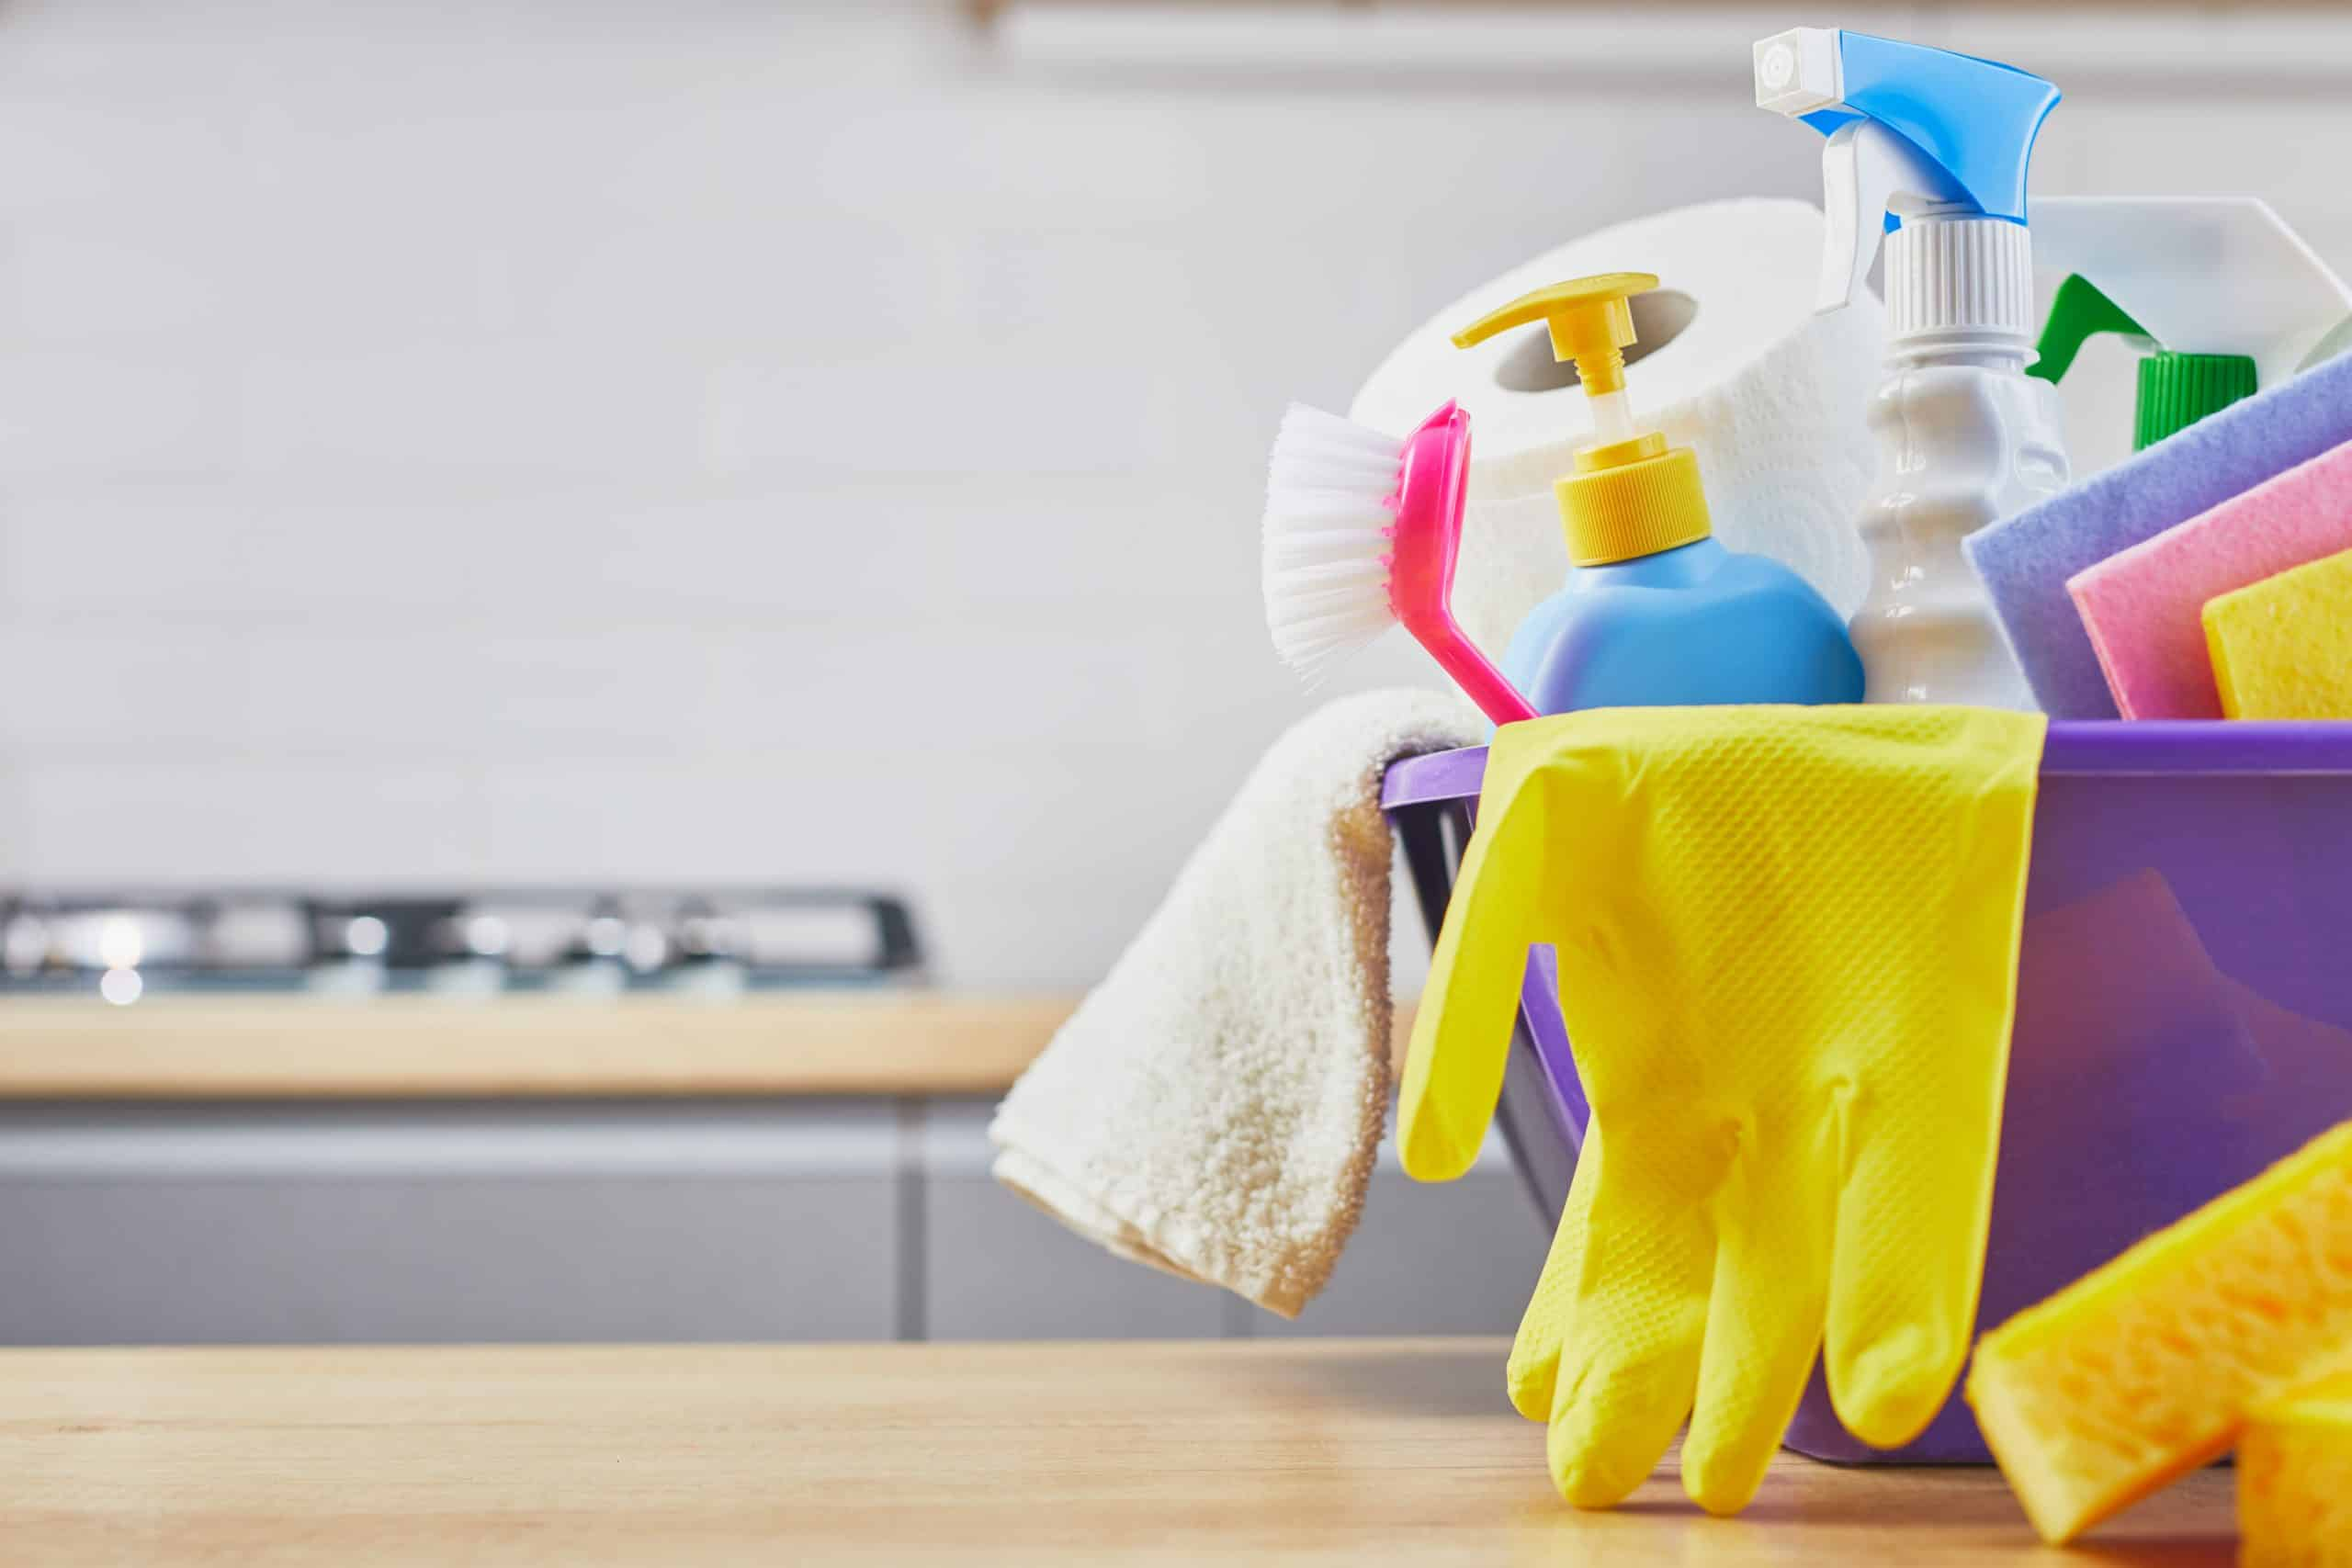 Tips on cleaning sticky kitchen cabinets